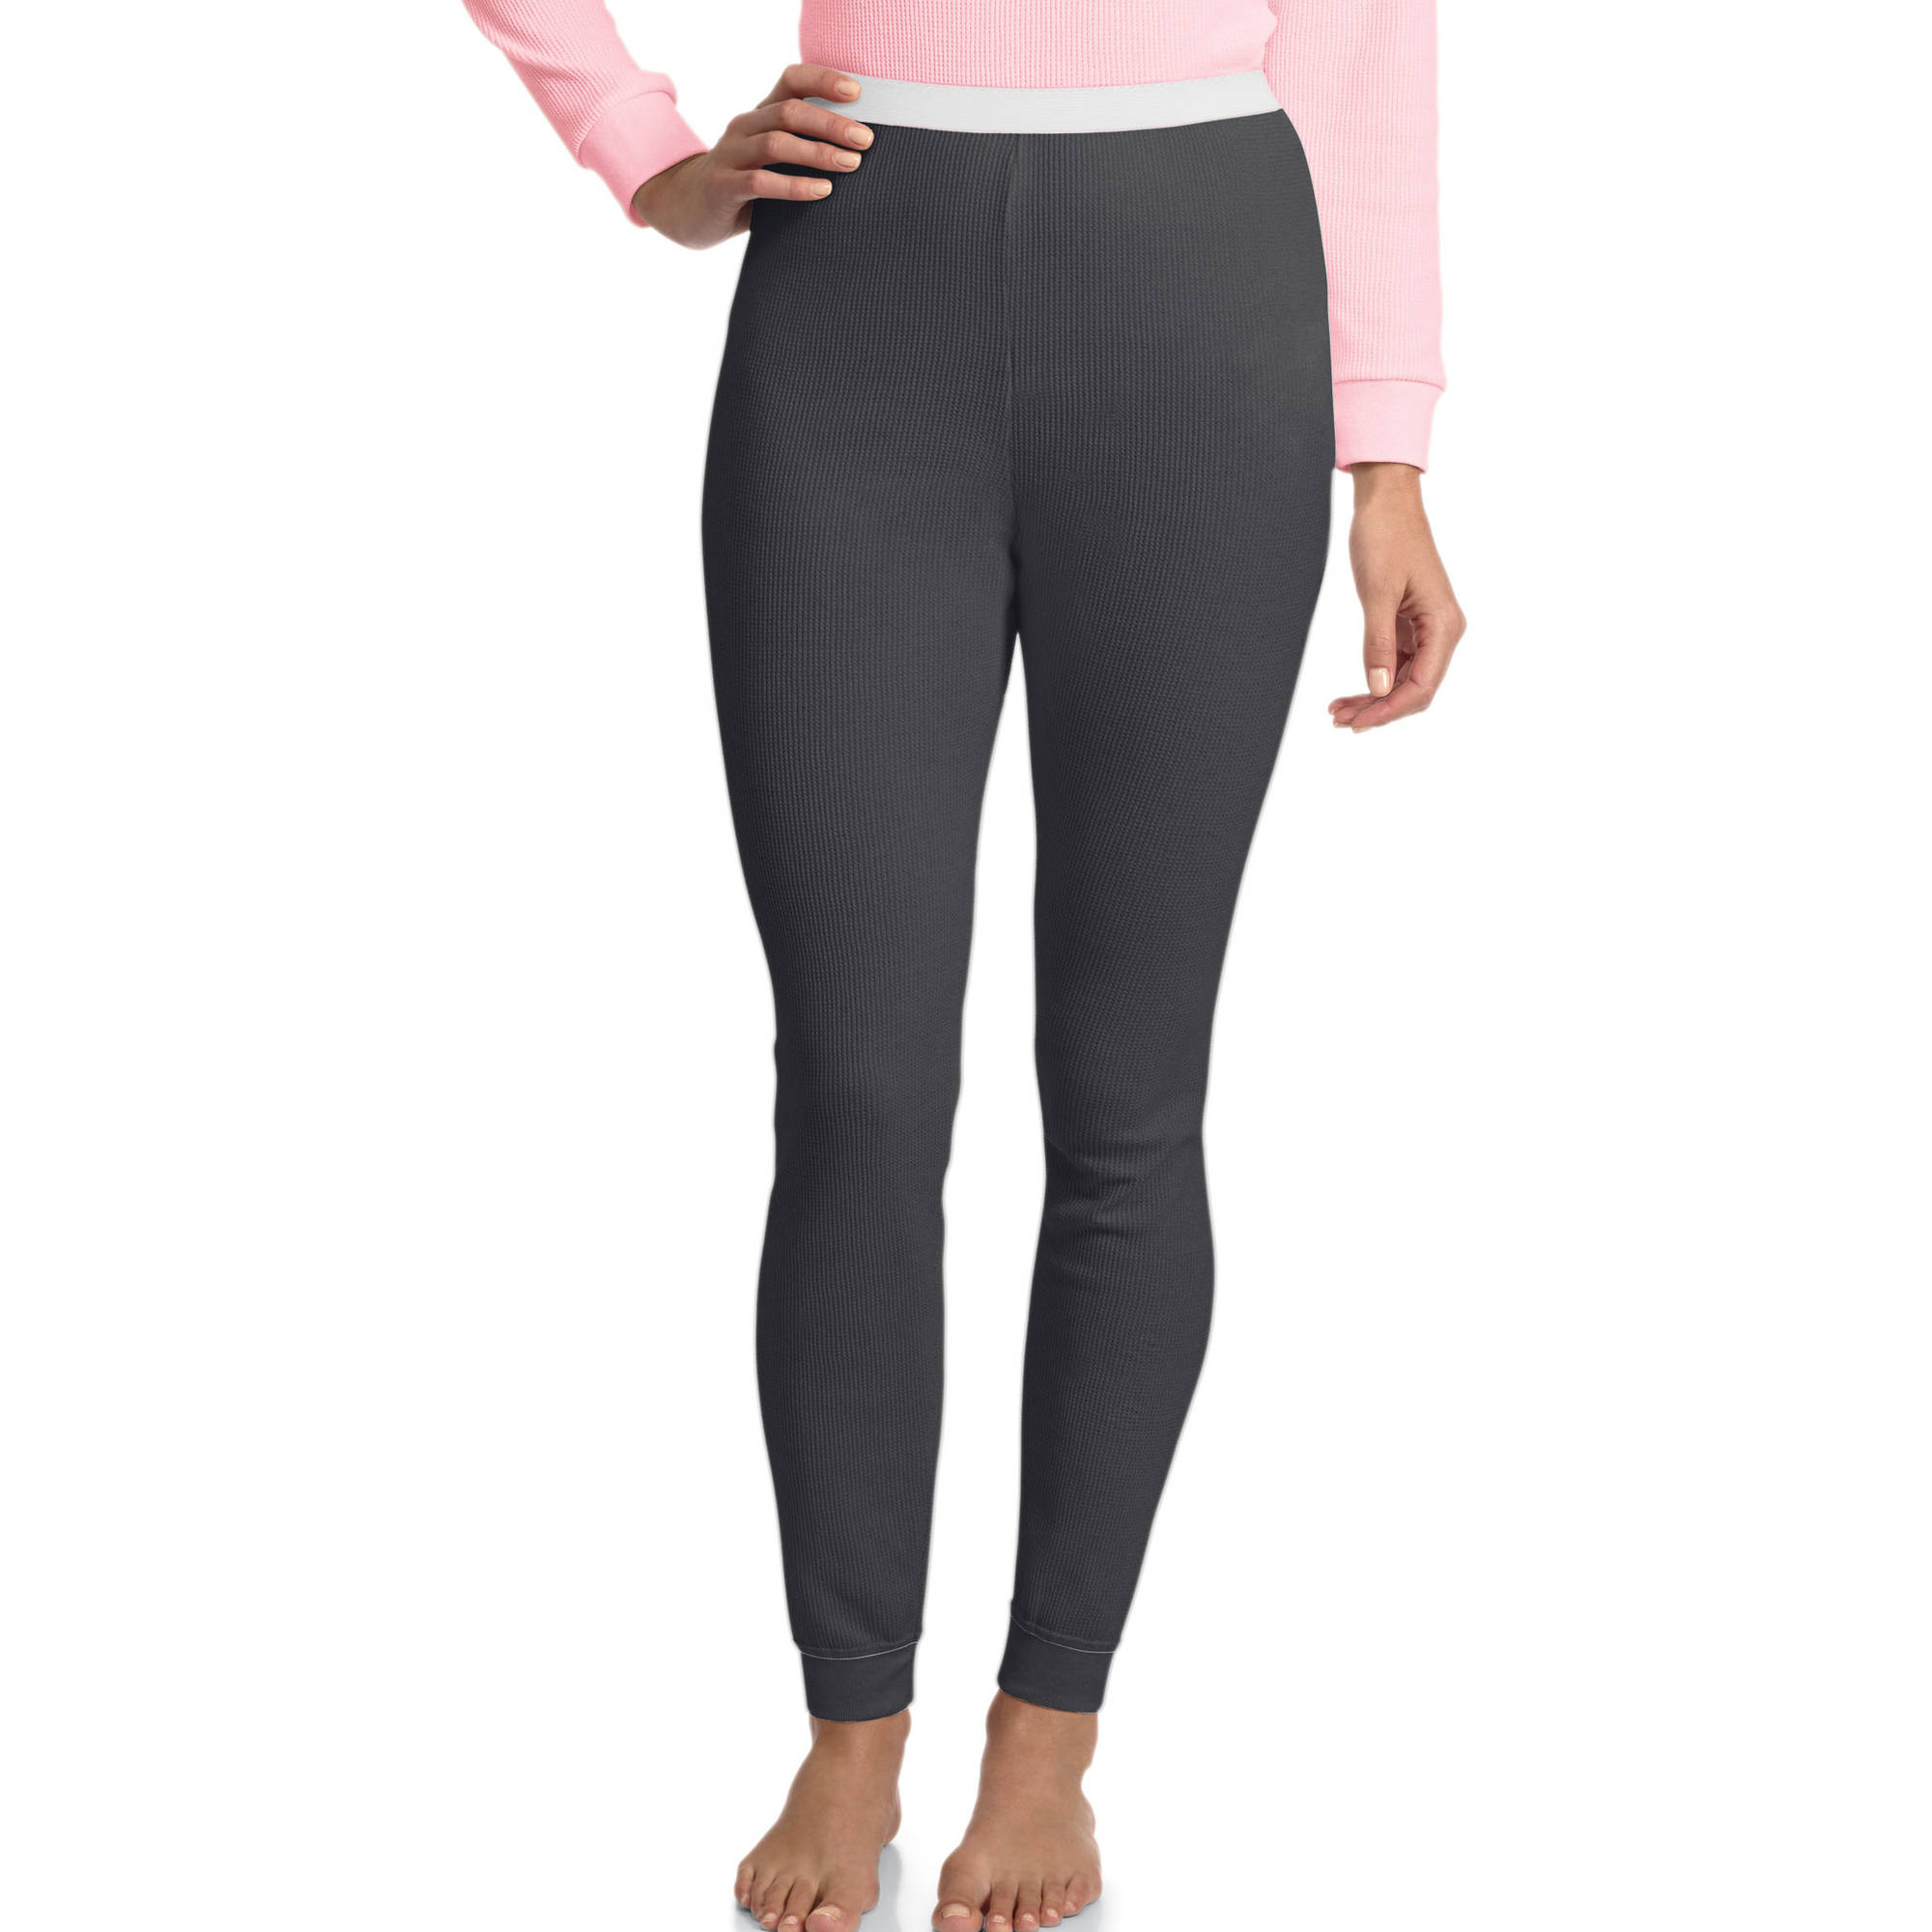 Hanes Women's X-Temp Thermal Underwear Pant - Walmart.com